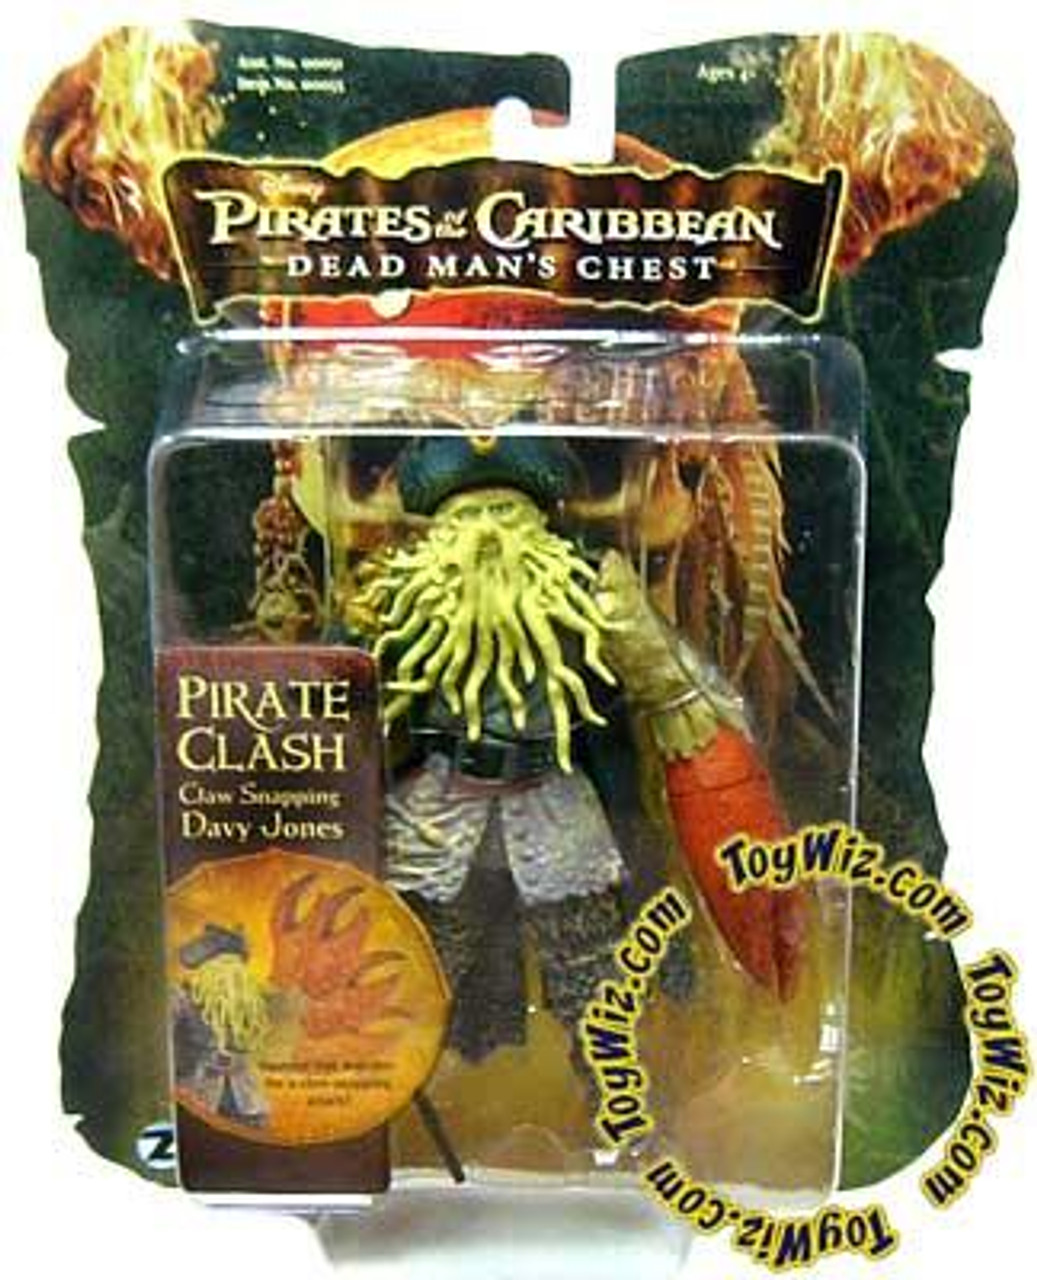 Pirates of the Caribbean Dead Man's Chest Pirate Clash Davy Jones Action Figure [Claw Snapping]